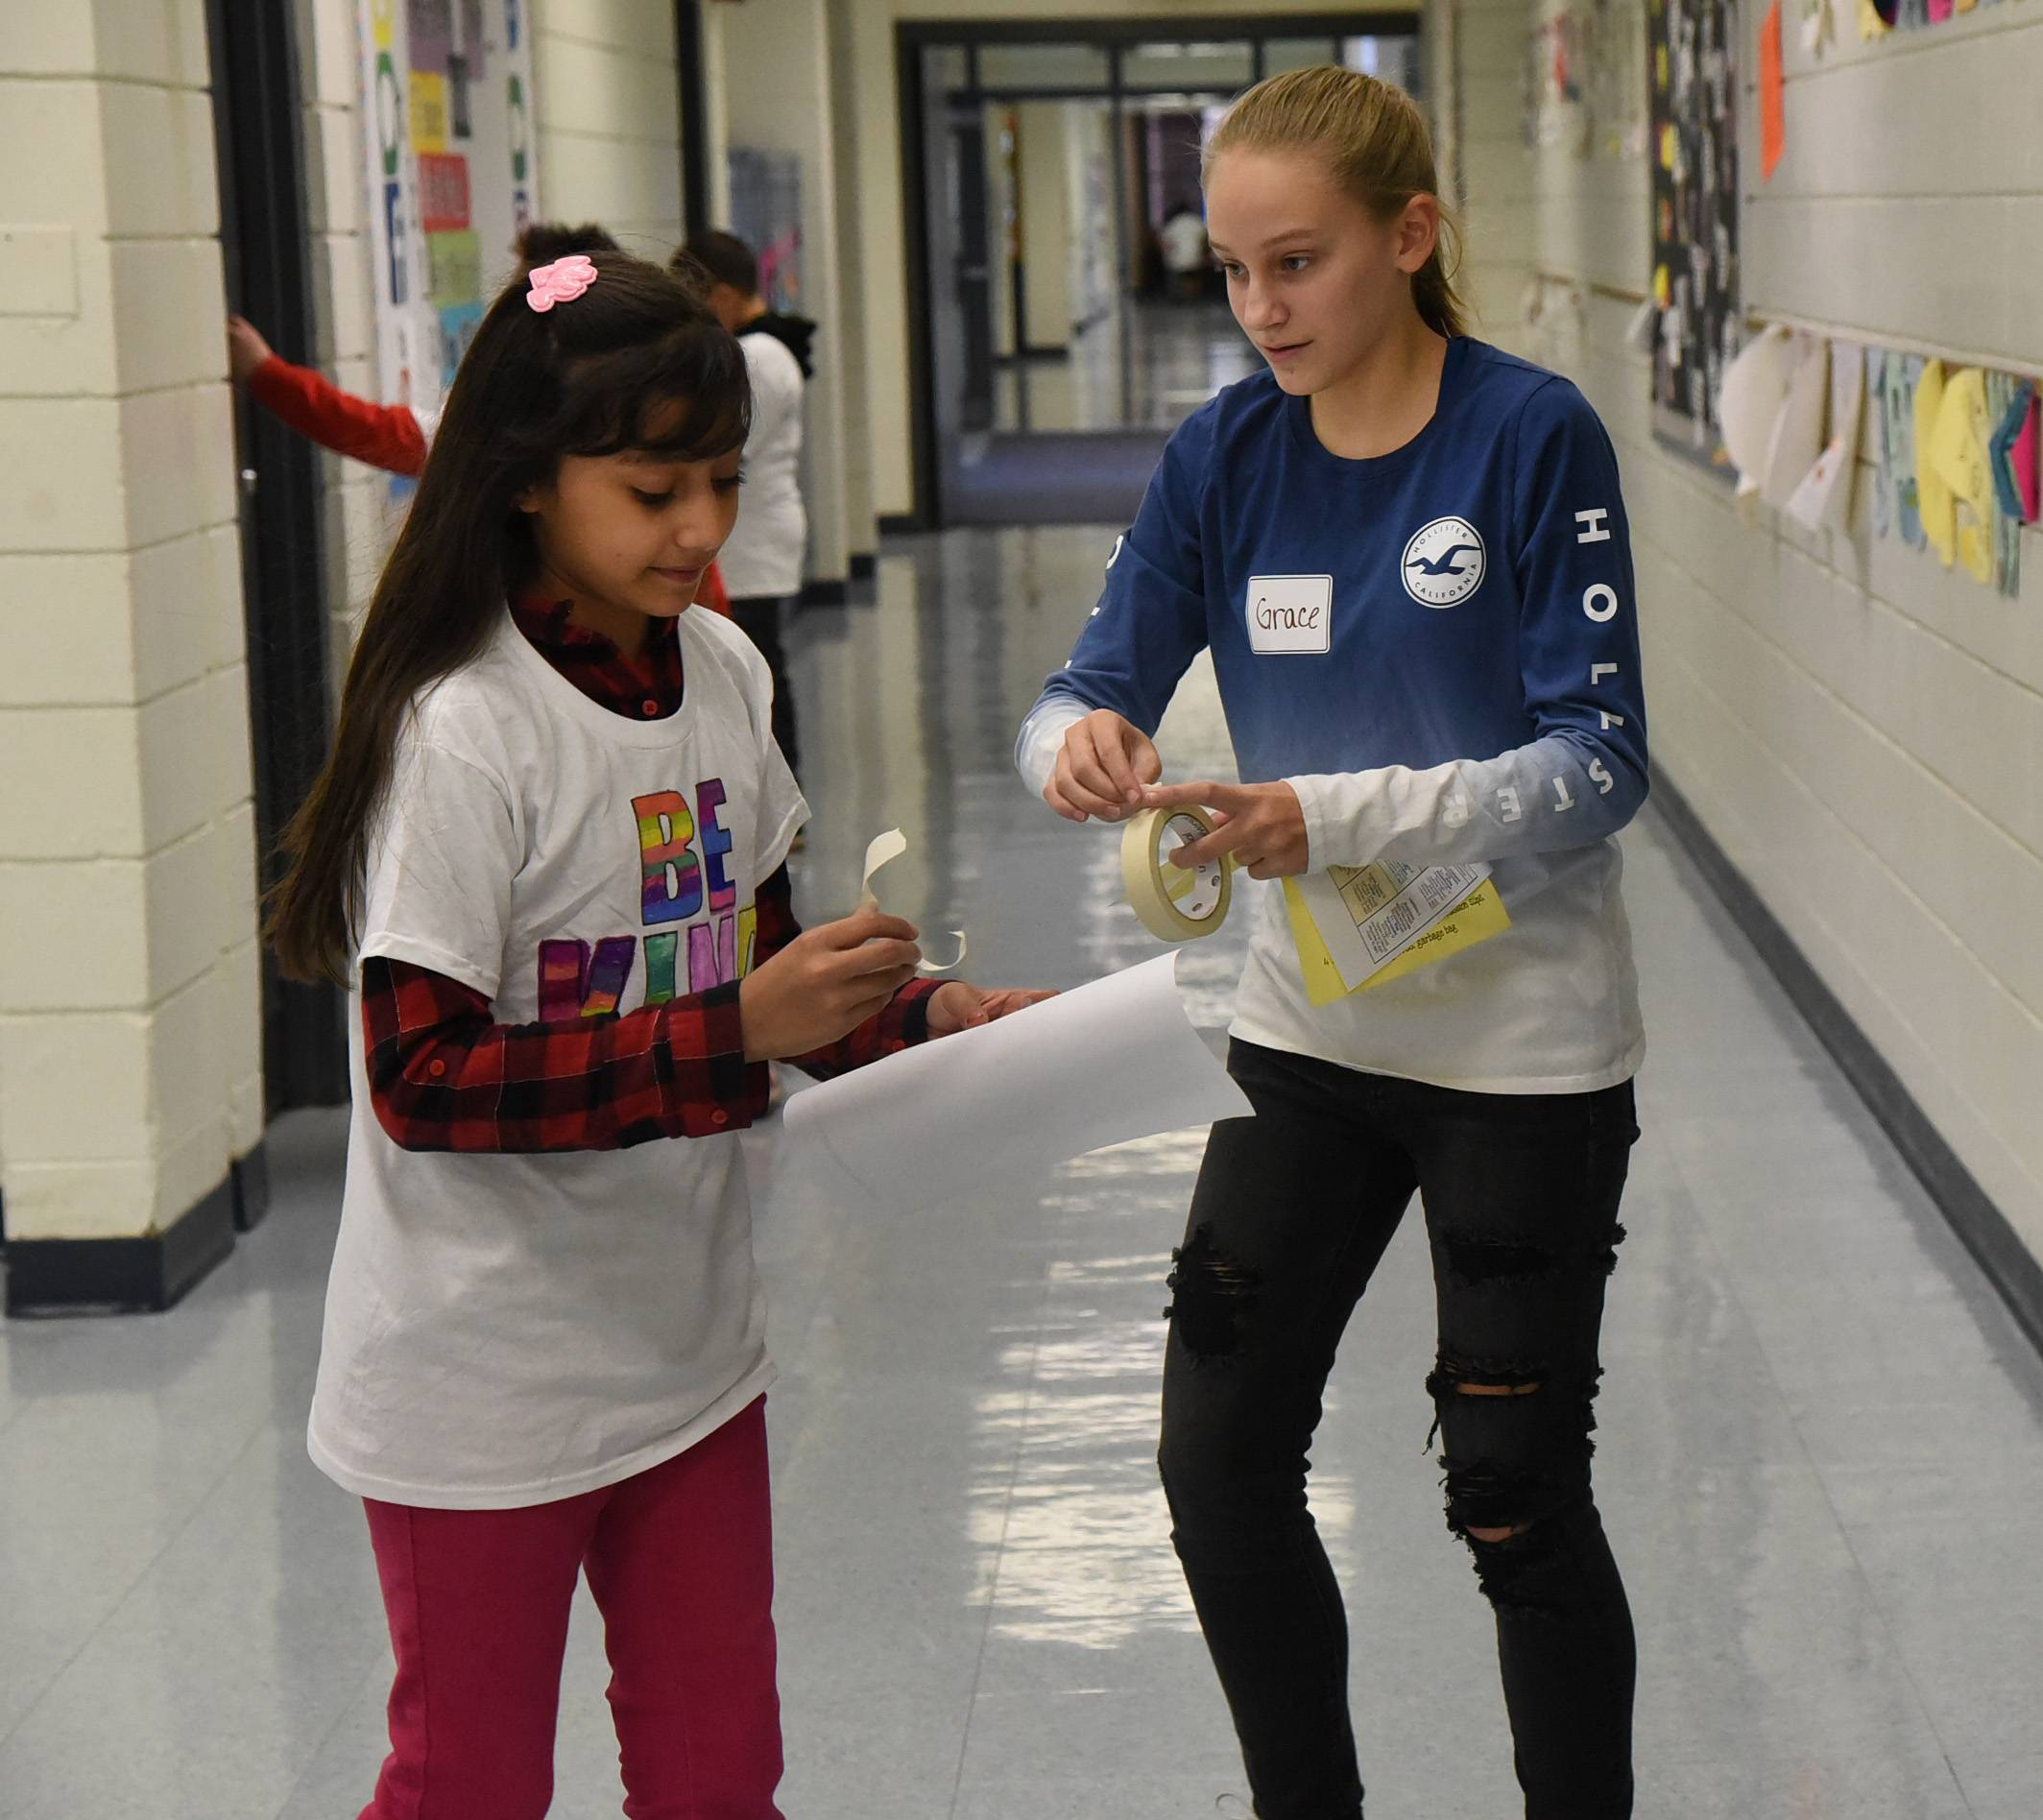 London Middle School eighth-grader Grace Veller helps Field Elementary School fourth-grader Ashley Martinez with her sign Monday at London. Field students came to post cheerful signs as part of World Kindness Day.